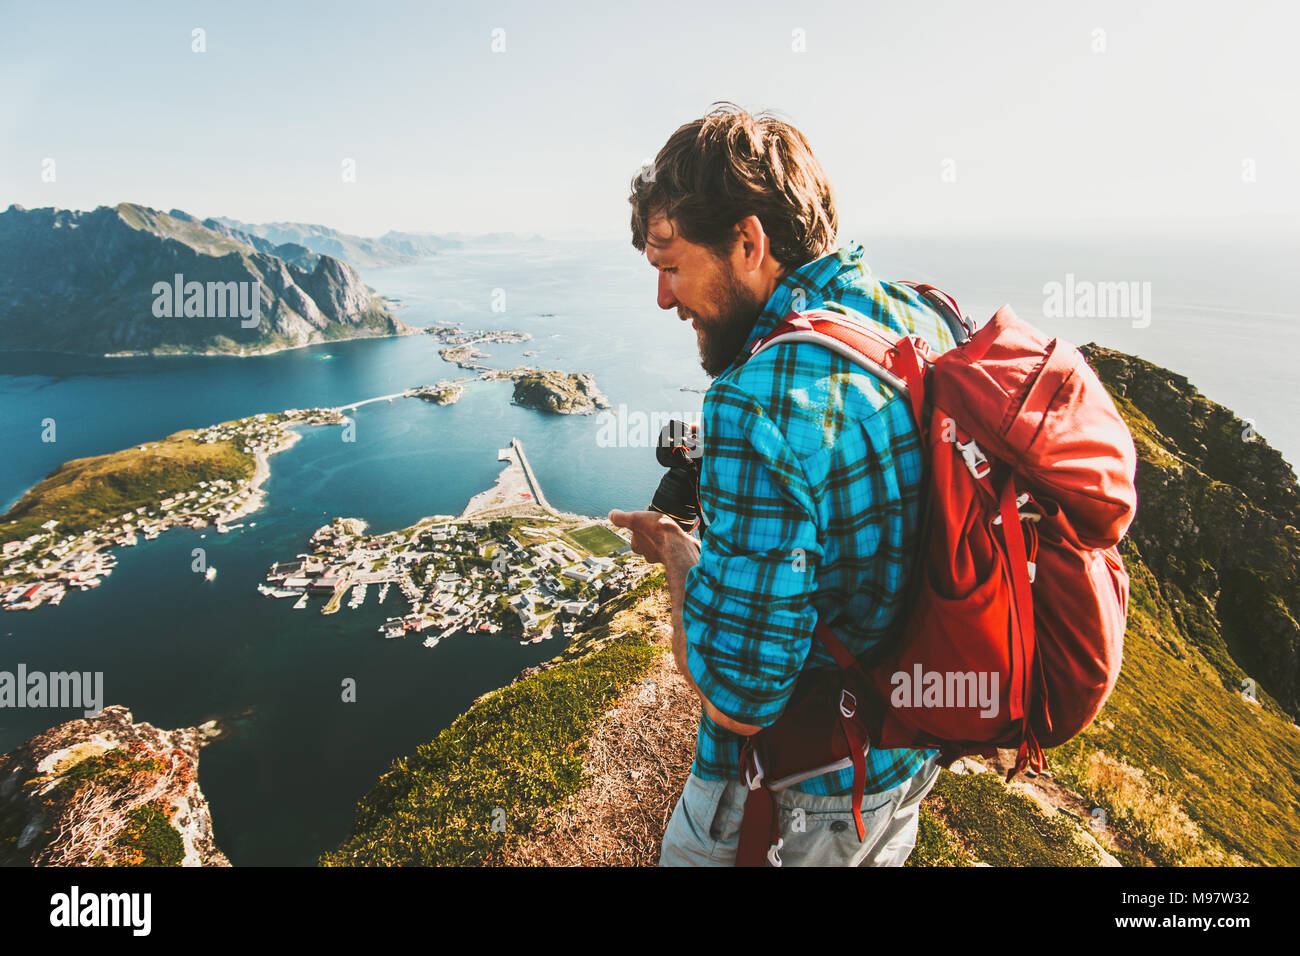 Man traveler with backpack and photo camera sightseeing view from  Reinebringen mountain in Norway lifestyle adventure traveling outdoor summer vacati - Stock Image